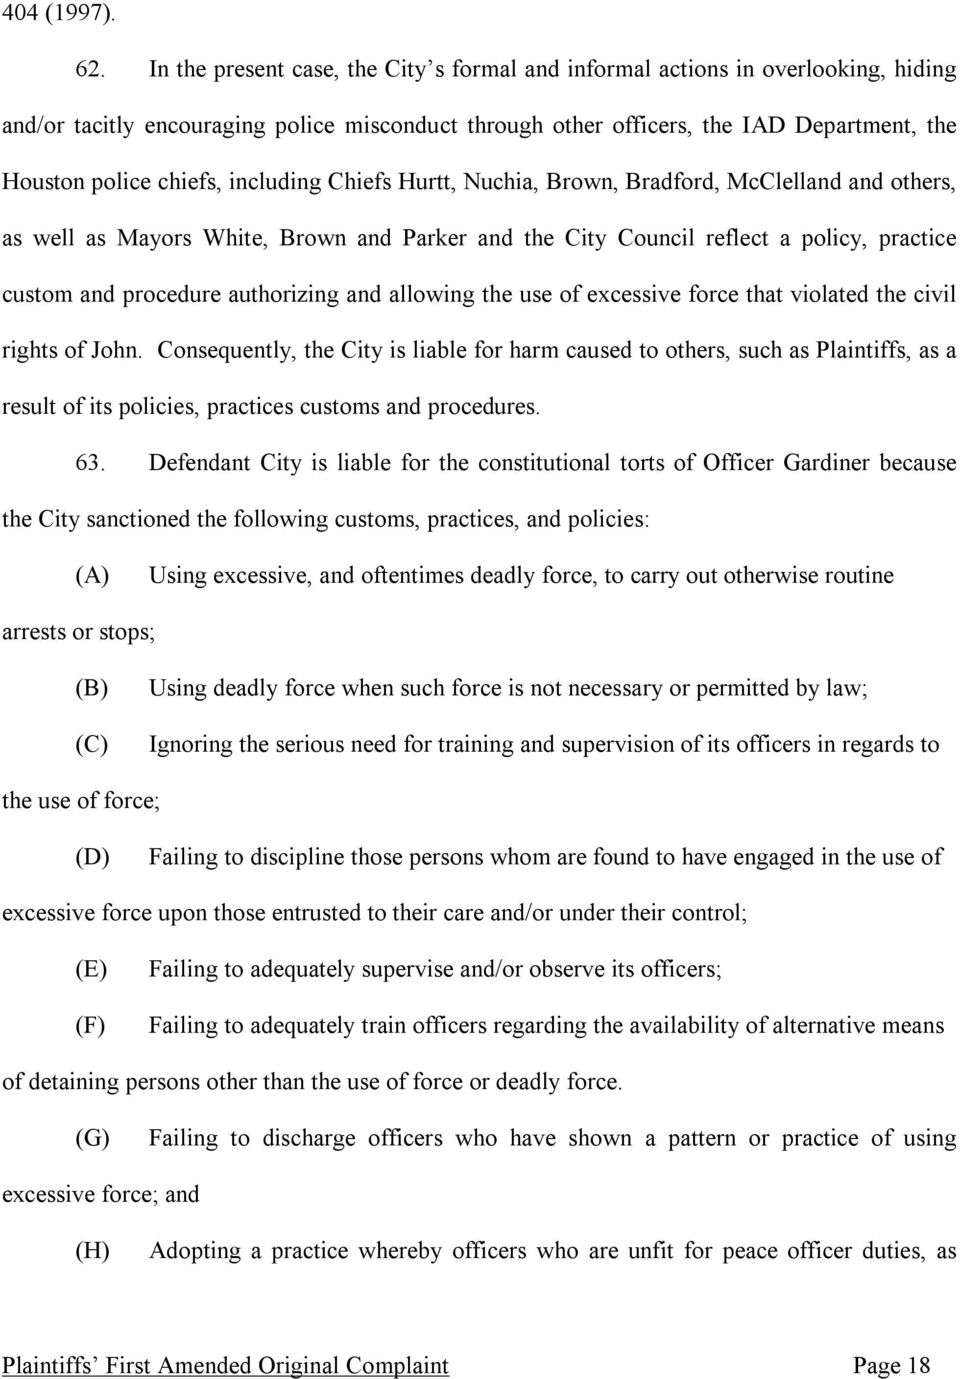 including Chiefs Hurtt, Nuchia, Brown, Bradford, McClelland and others, as well as Mayors White, Brown and Parker and the City Council reflect a policy, practice custom and procedure authorizing and